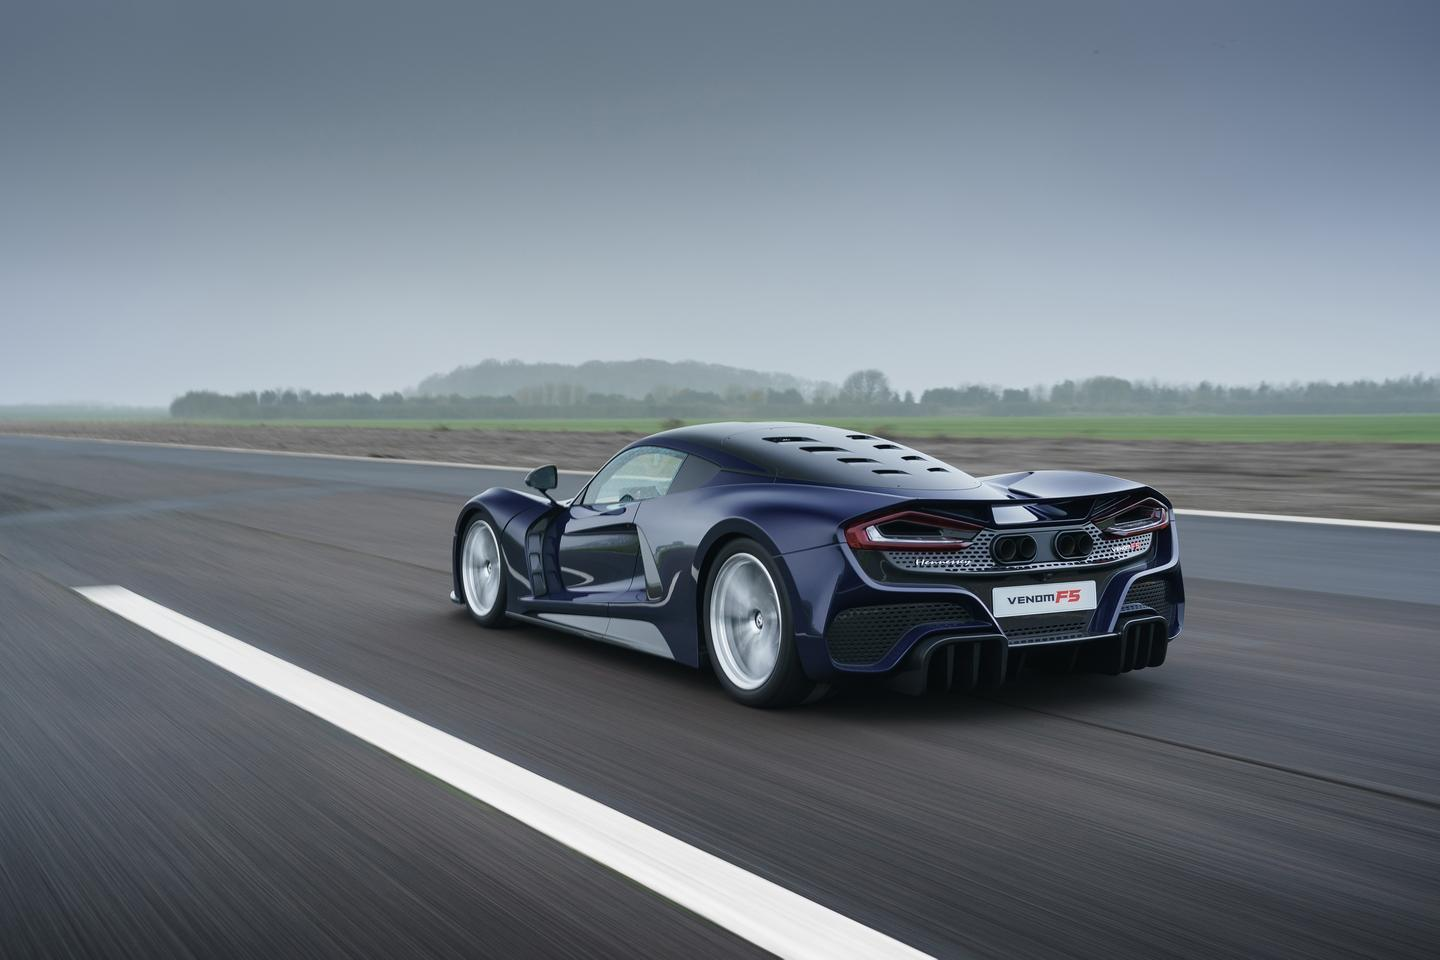 """A Texan hypercar with its sights set on the recently vacated """"world's fastest car"""" title"""